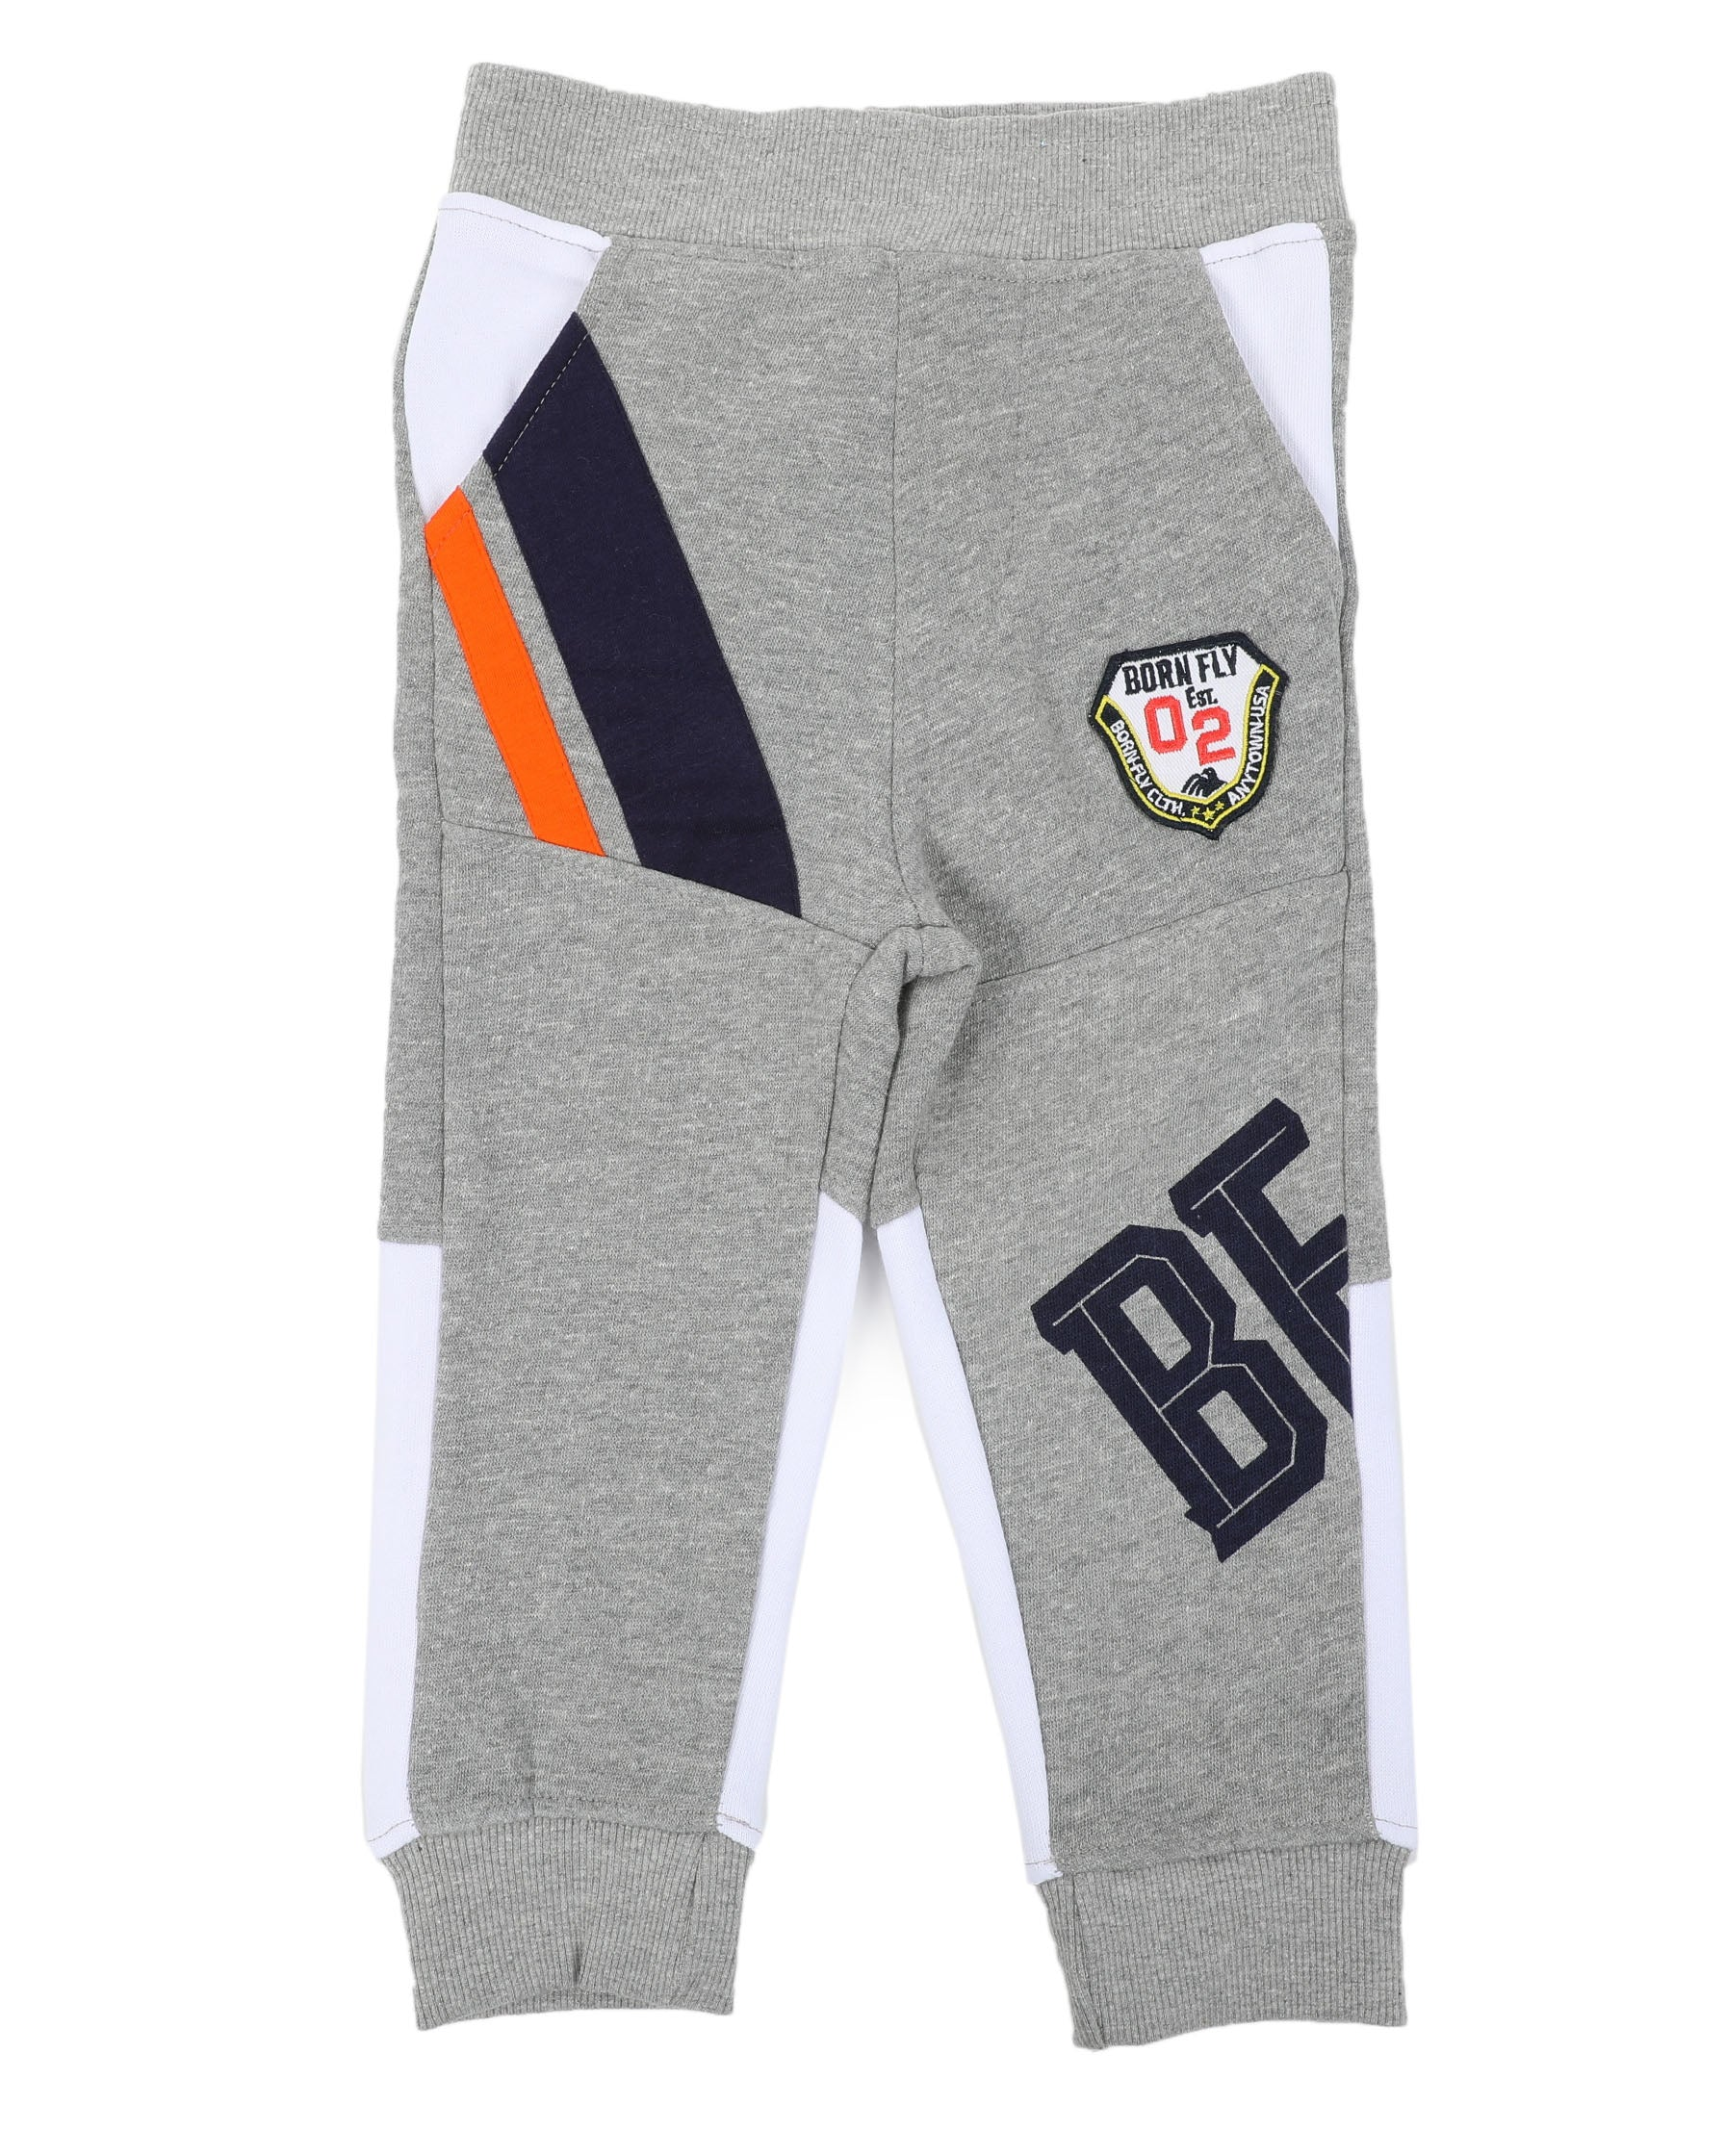 Born Fly Colorblock Joggers - FLY GUYZ